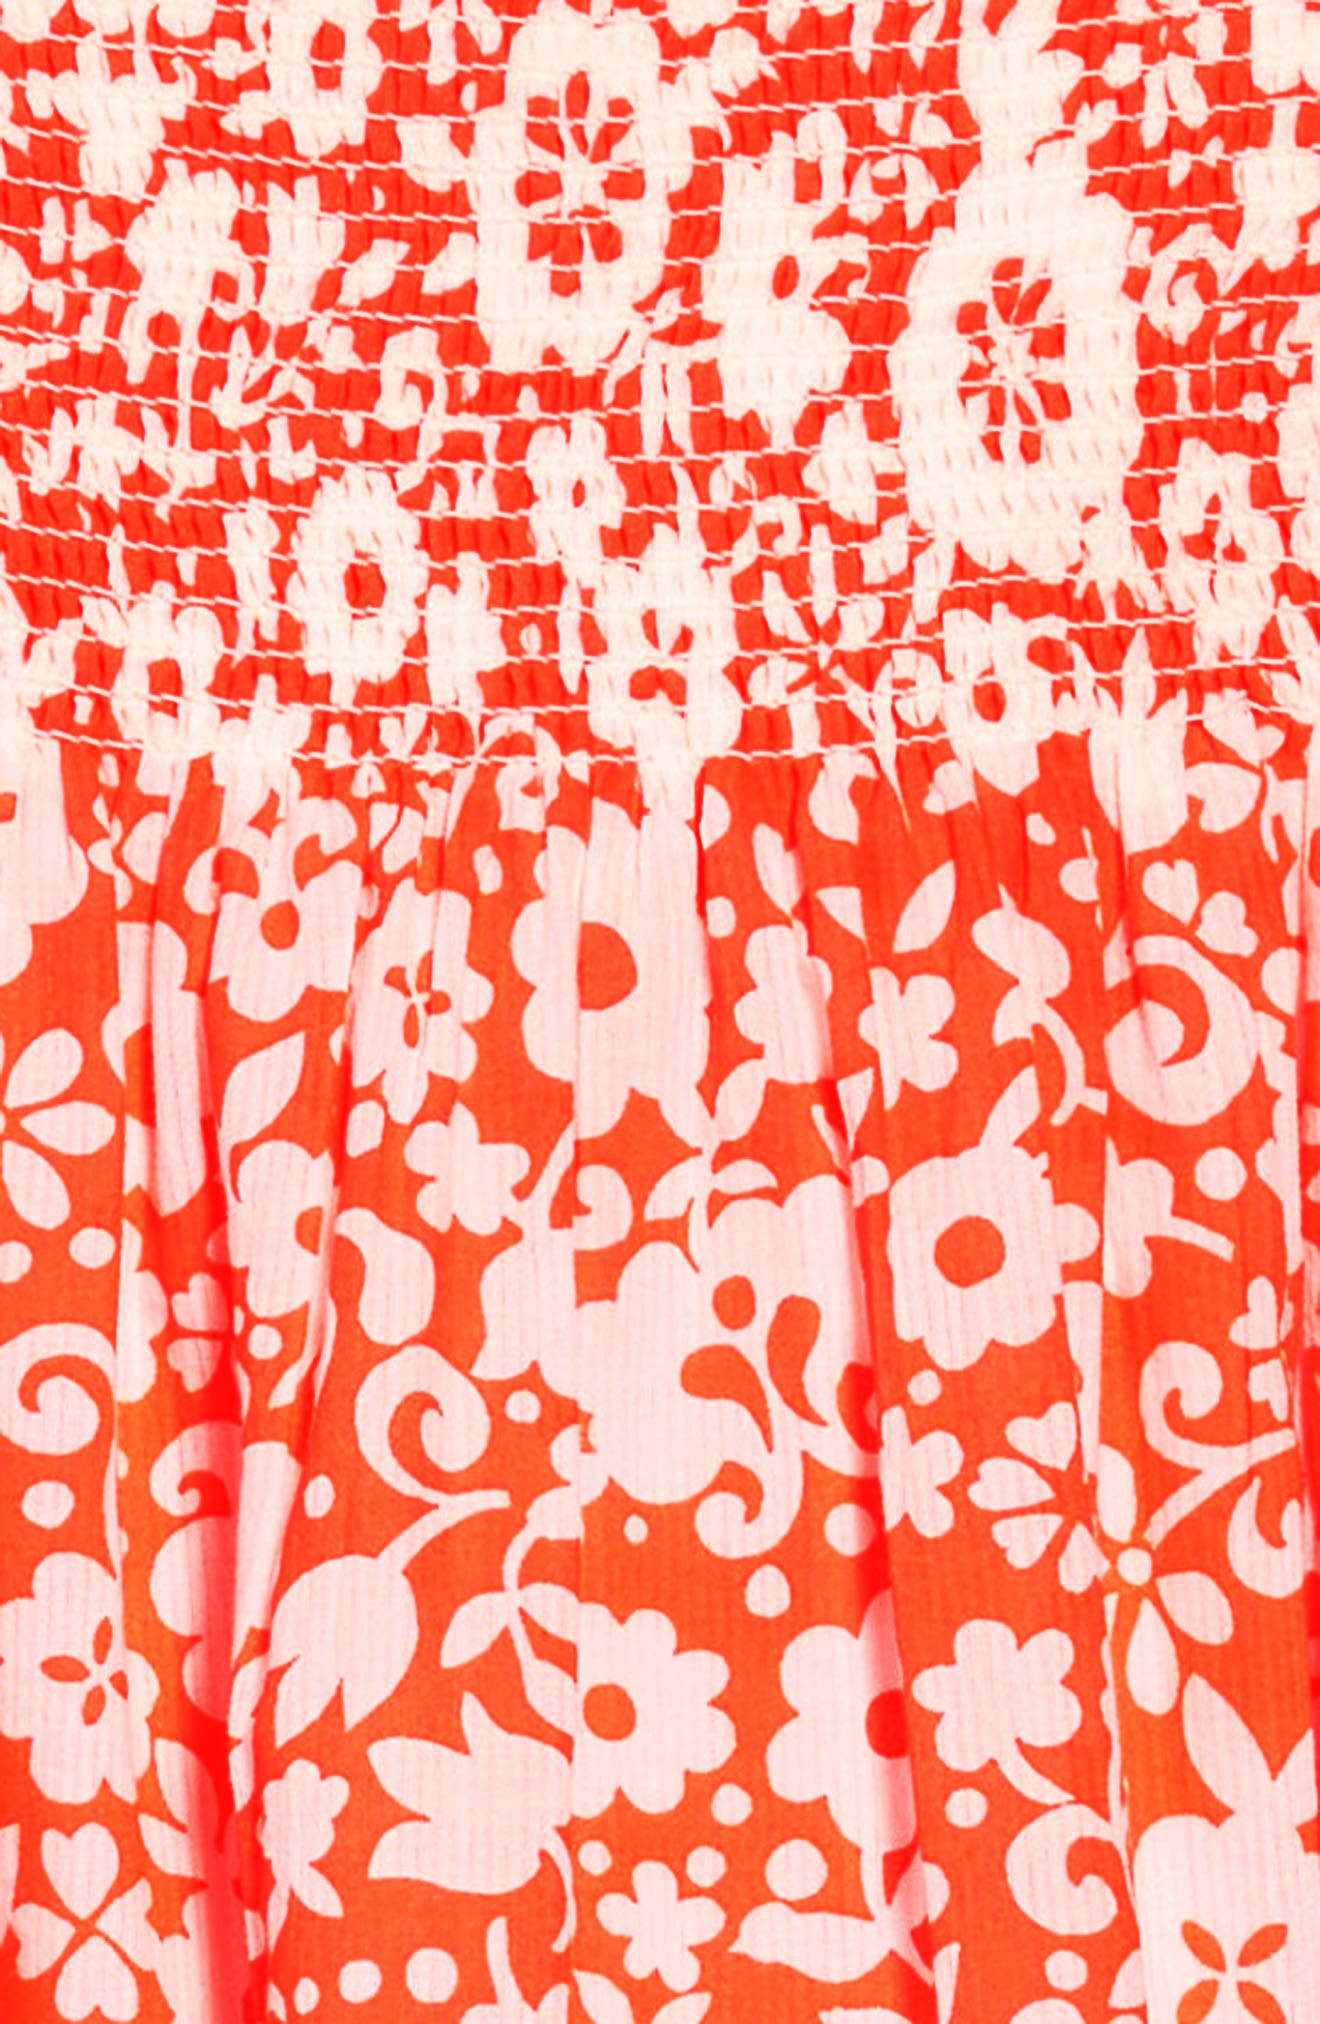 Surf Floral Sundress,                             Alternate thumbnail 3, color,                             Shocking Red Surf Floral